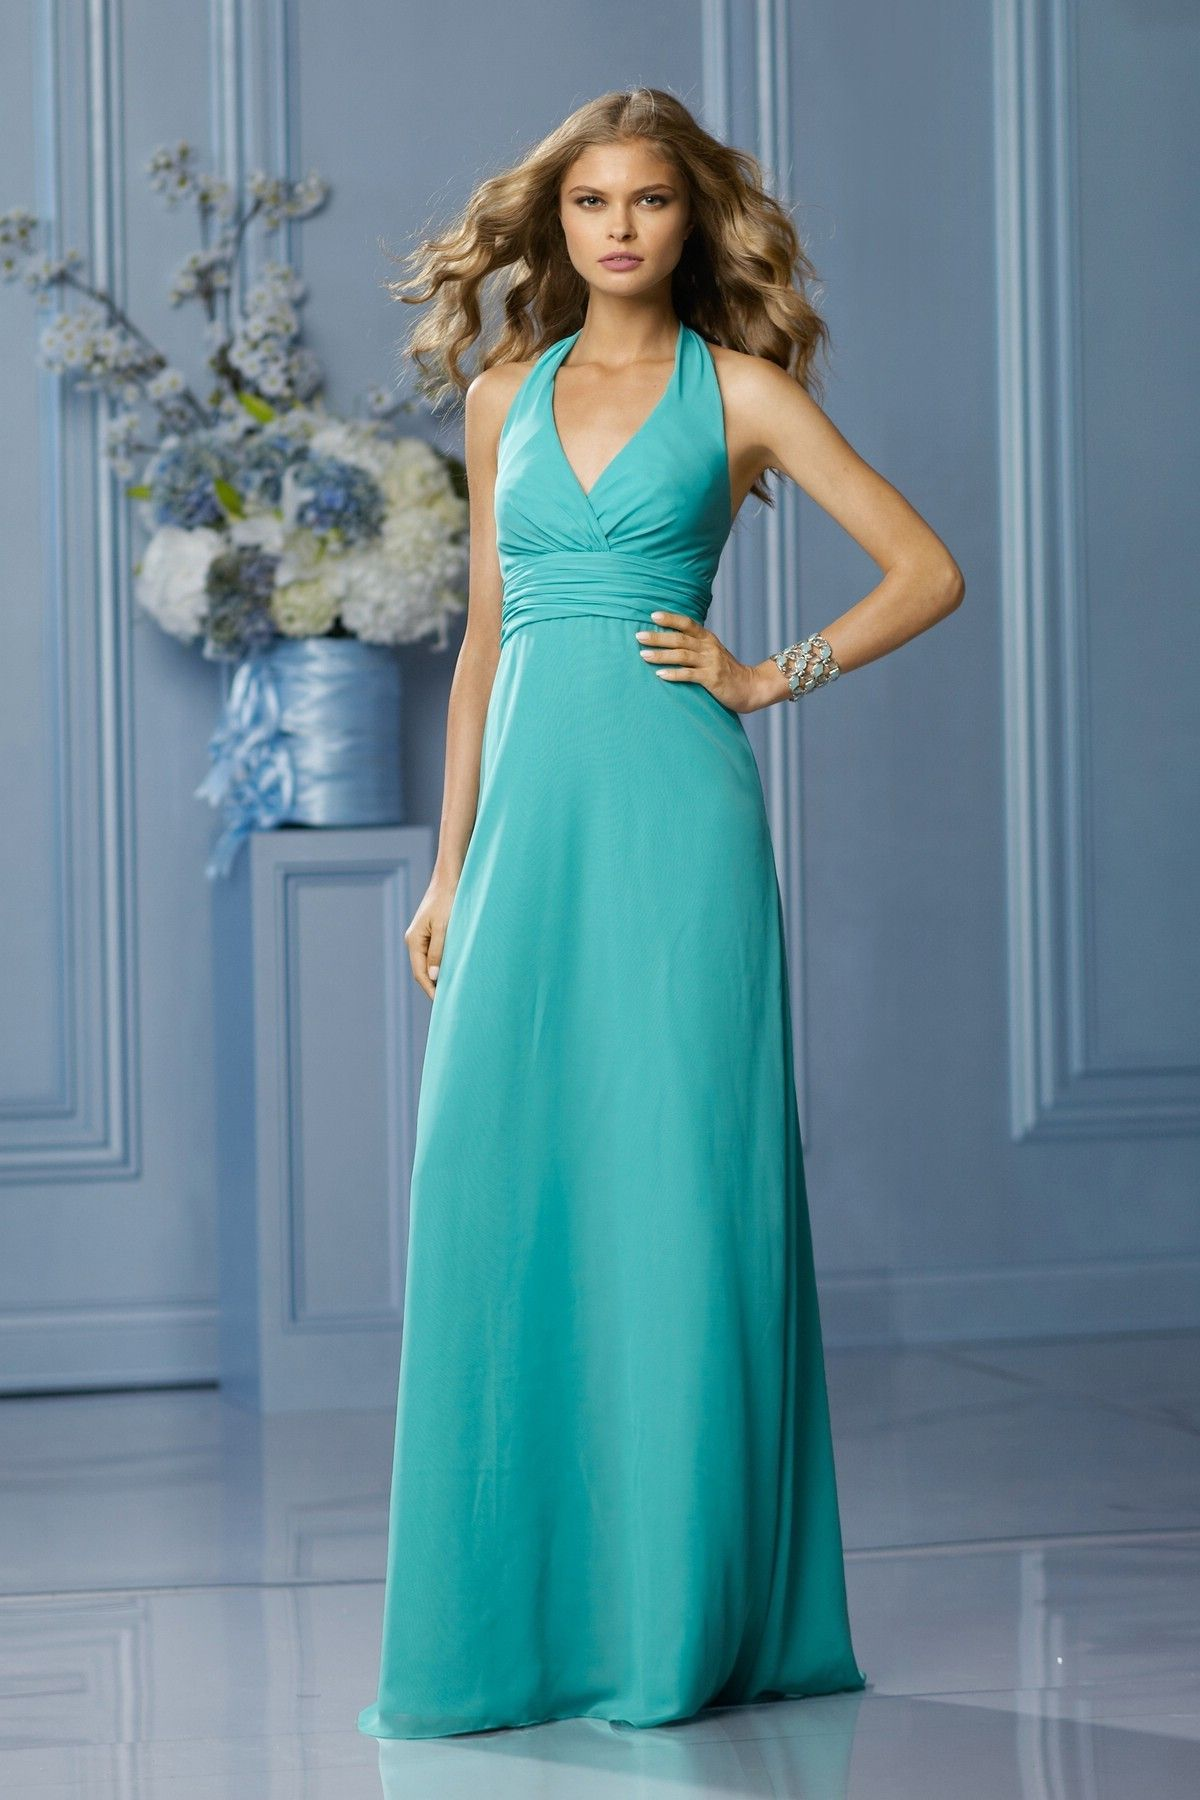 Awesome Bridesmaid Dresses Styles Pictures Inspiration - Wedding ...